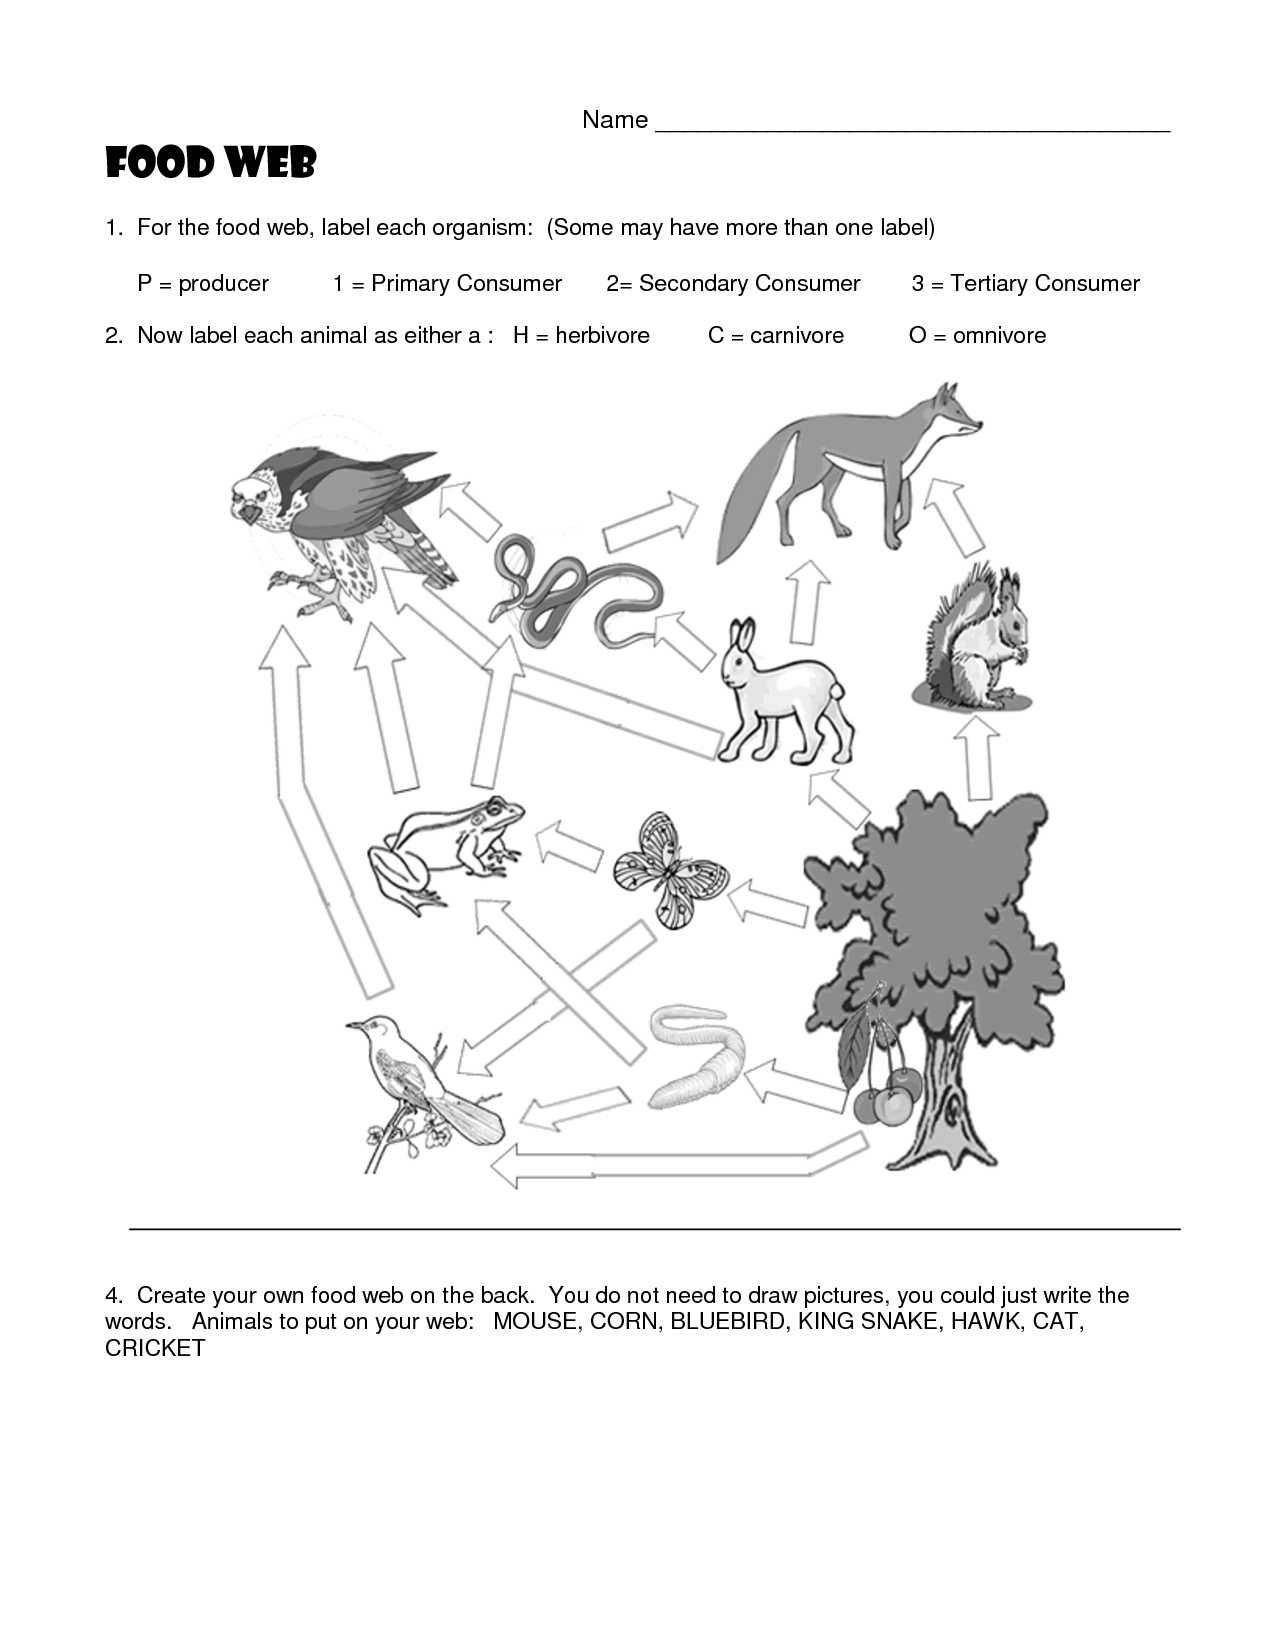 worksheet Herbivore Carnivore Omnivore Worksheet pictures of omnivores carnivores and herbivores food web worksheets worksheets